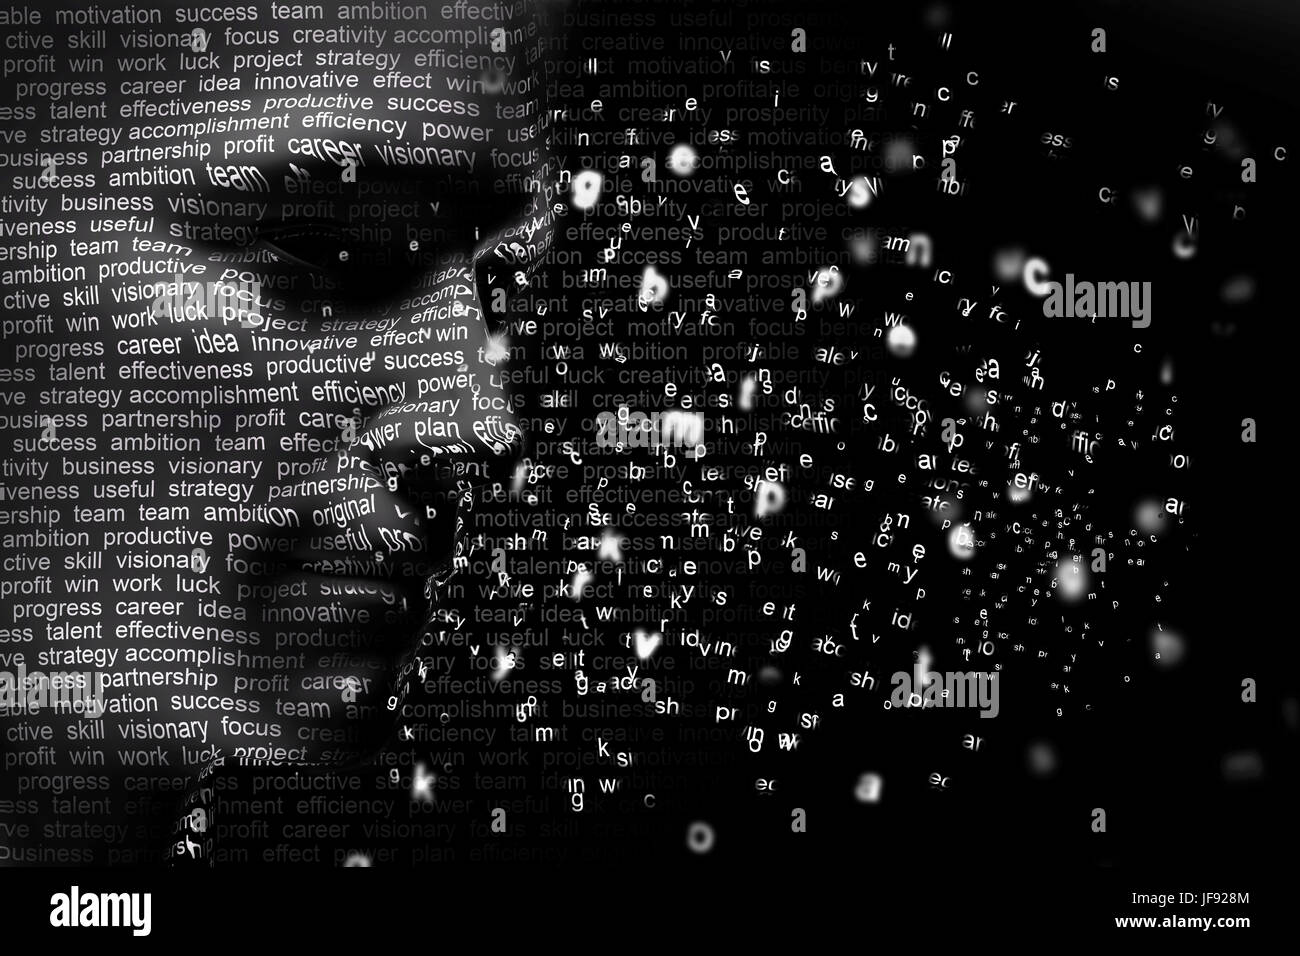 Man face blended with flowing list of motivational words. Concept of self motivation, future planning, intelligence. - Stock Image